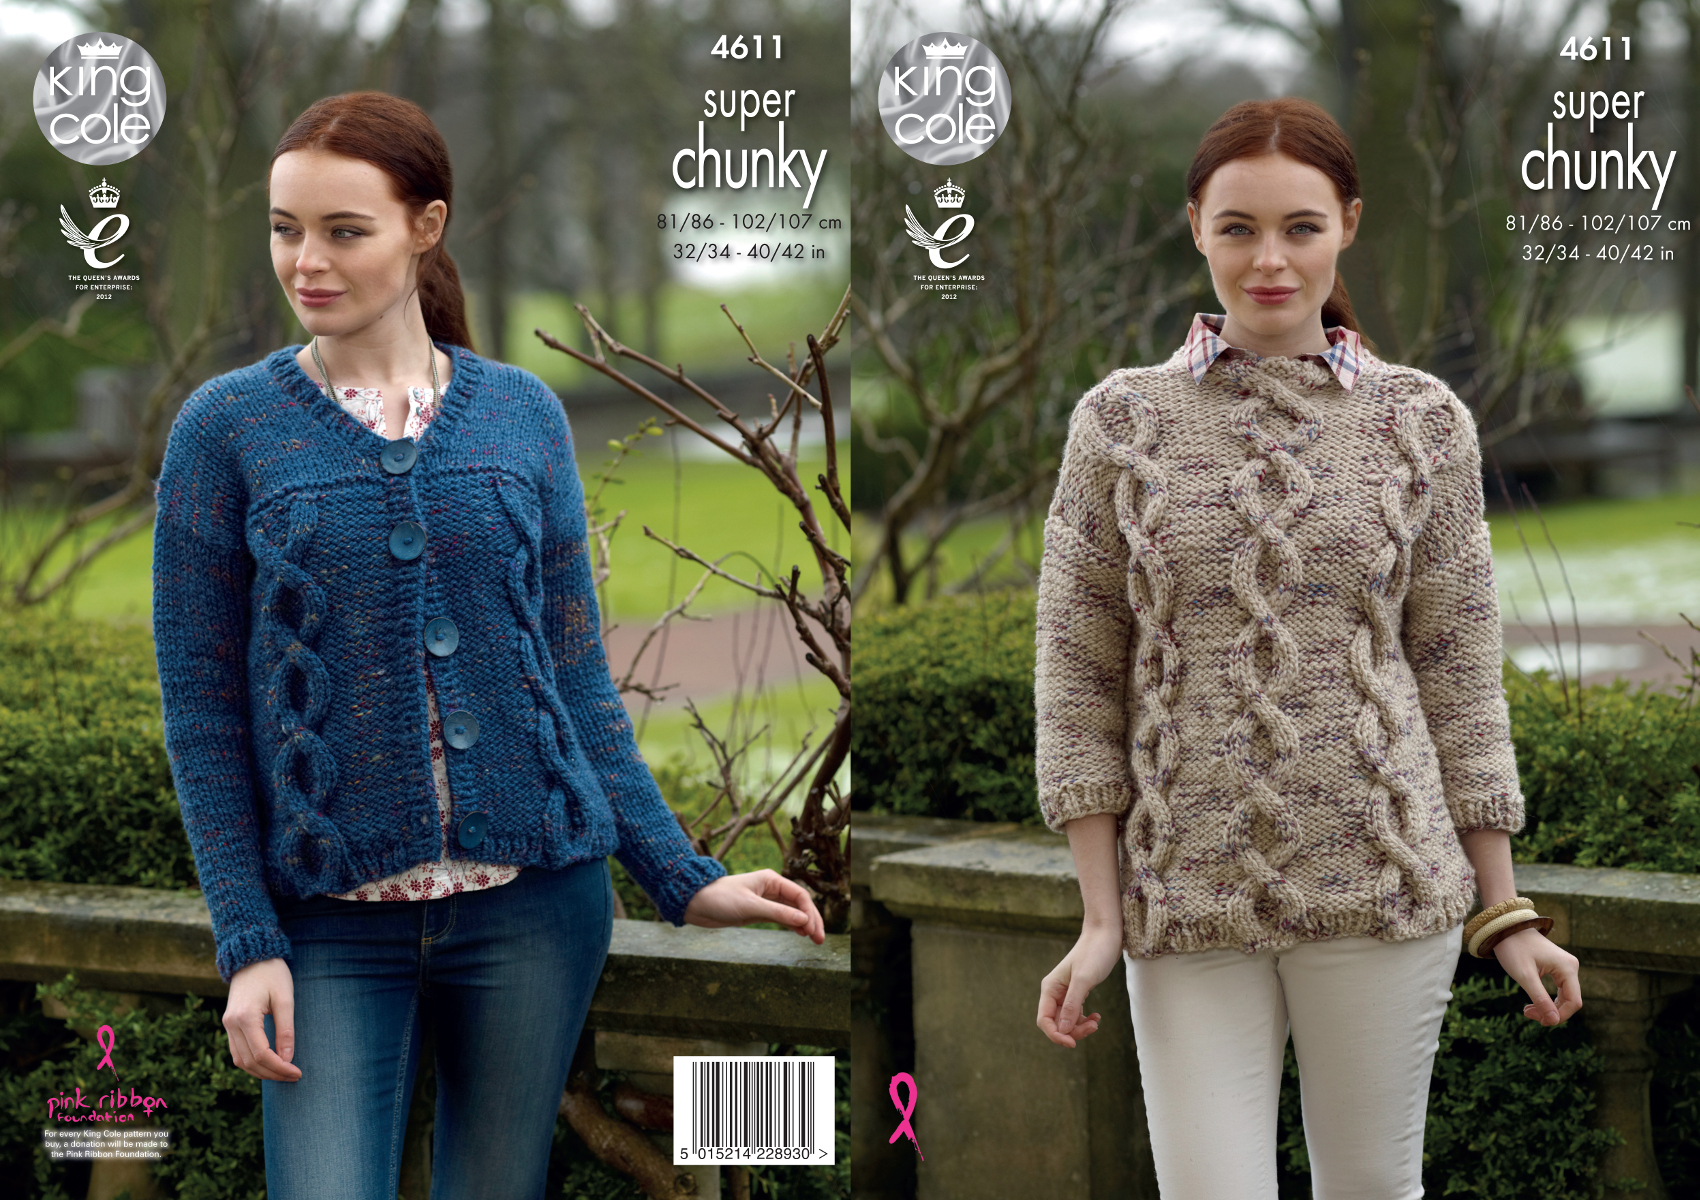 King cole ladies super chunky knitting pattern cable knit jumper king cole ladies super chunky knitting pattern cable knit jumper cardigan 4611 bankloansurffo Gallery